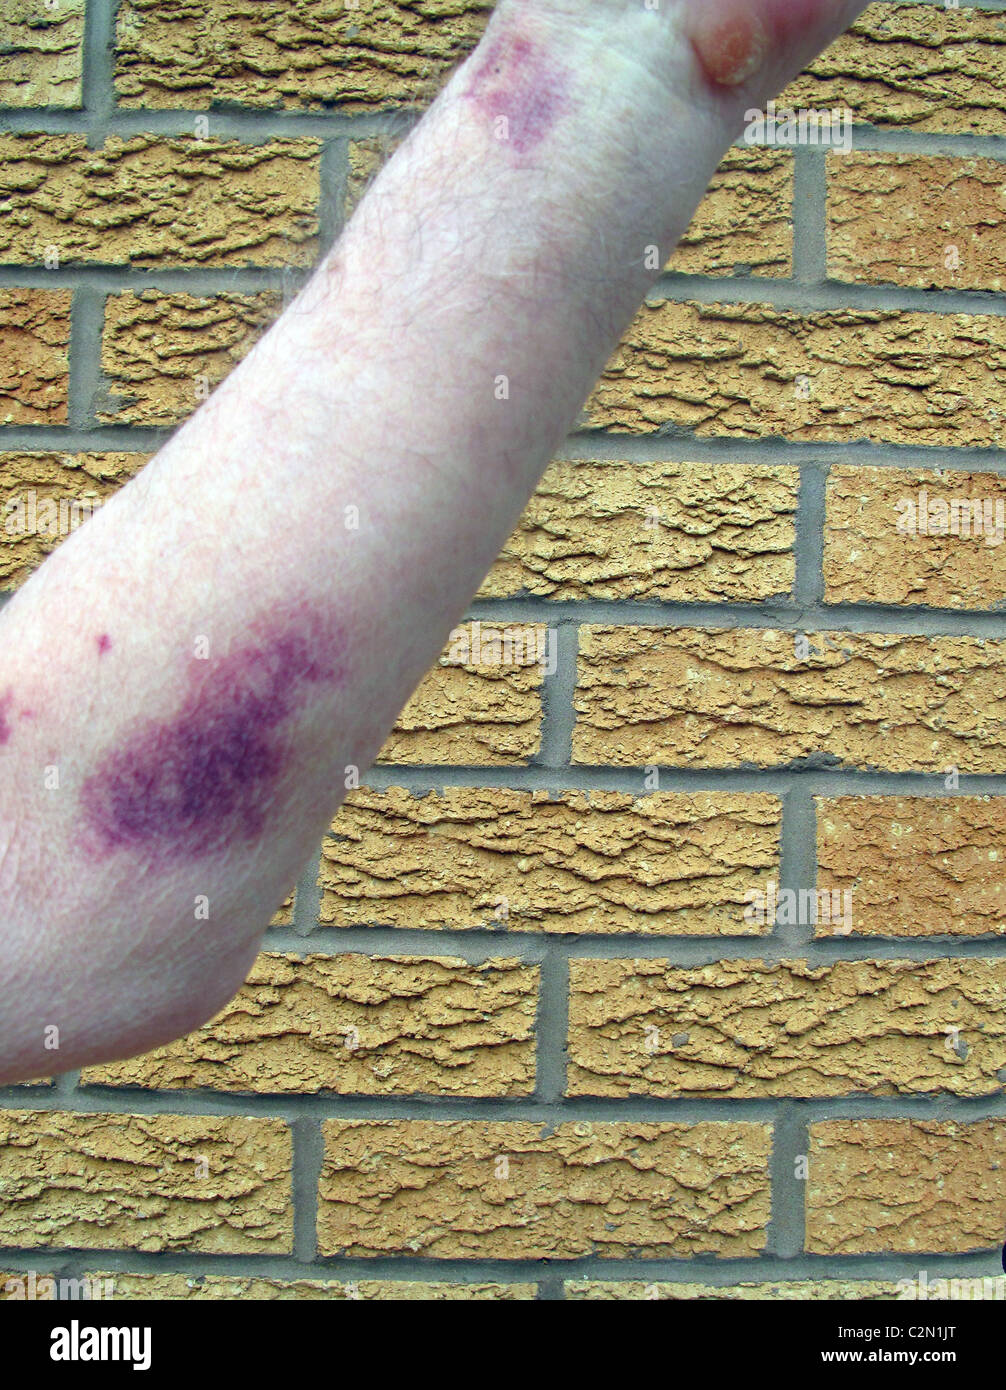 Close up of a badly bruised arm - Stock Image